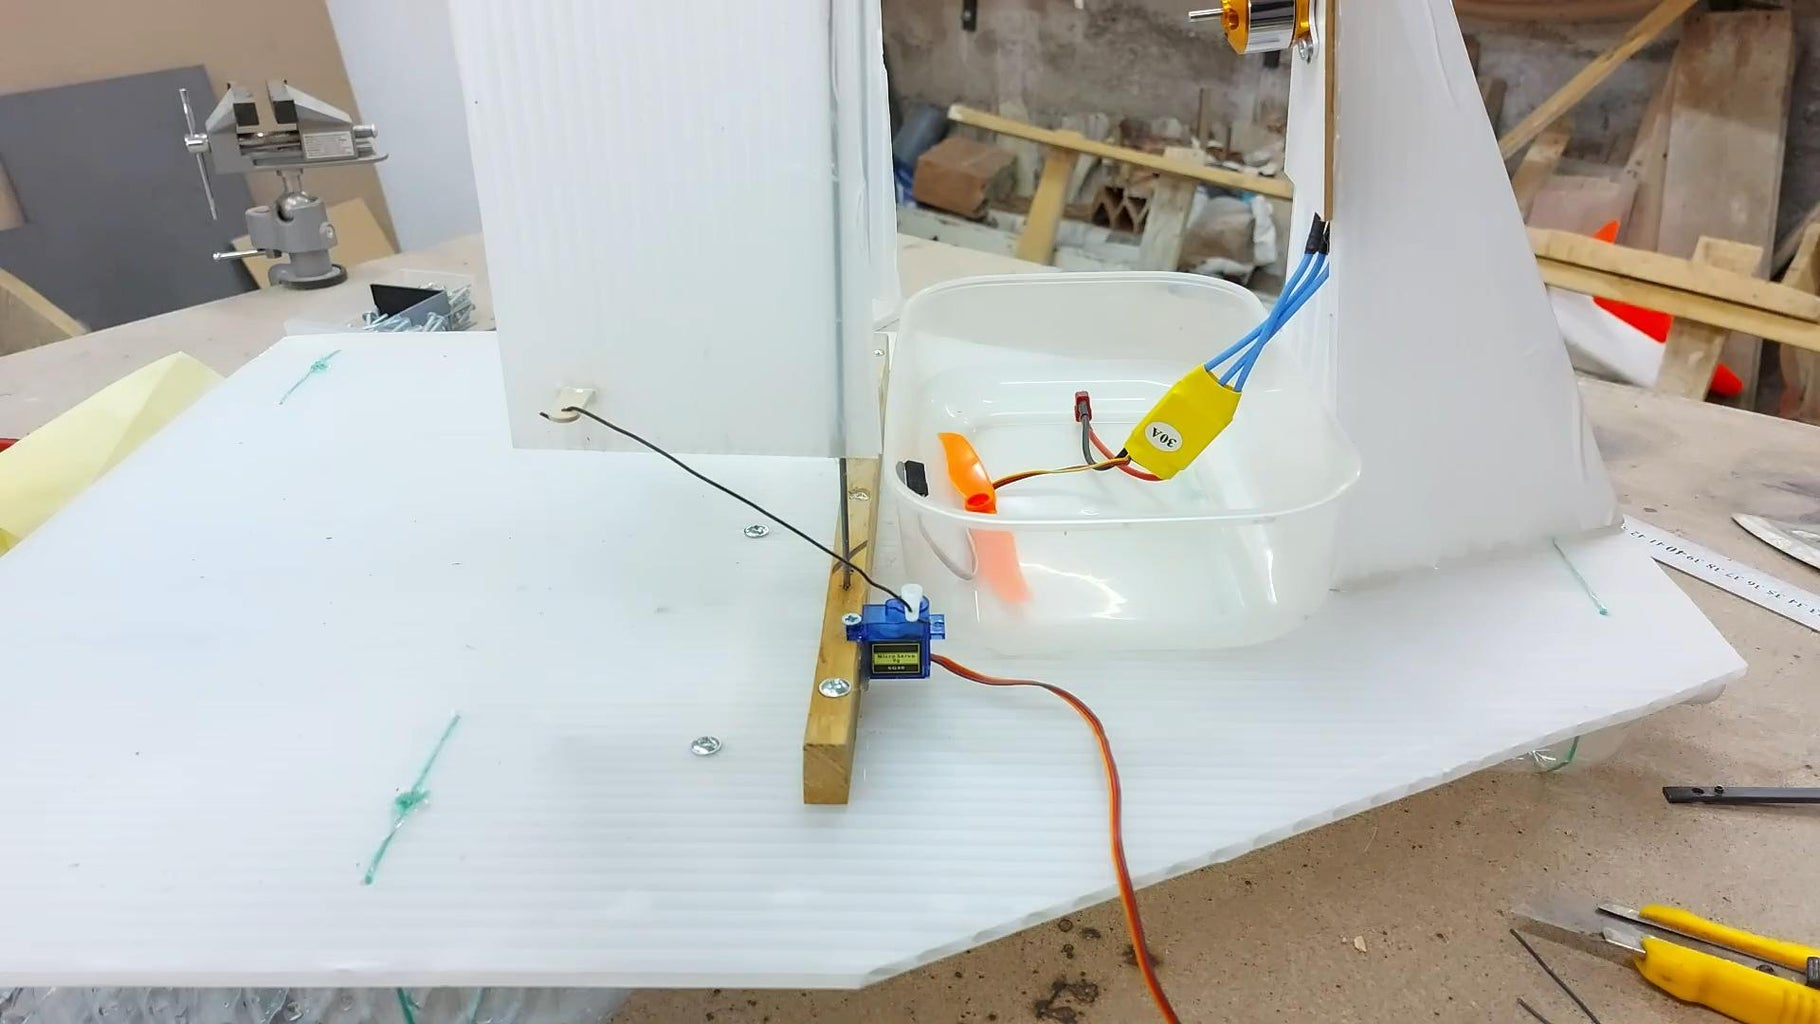 Connect the Rudder Servo and Electronics